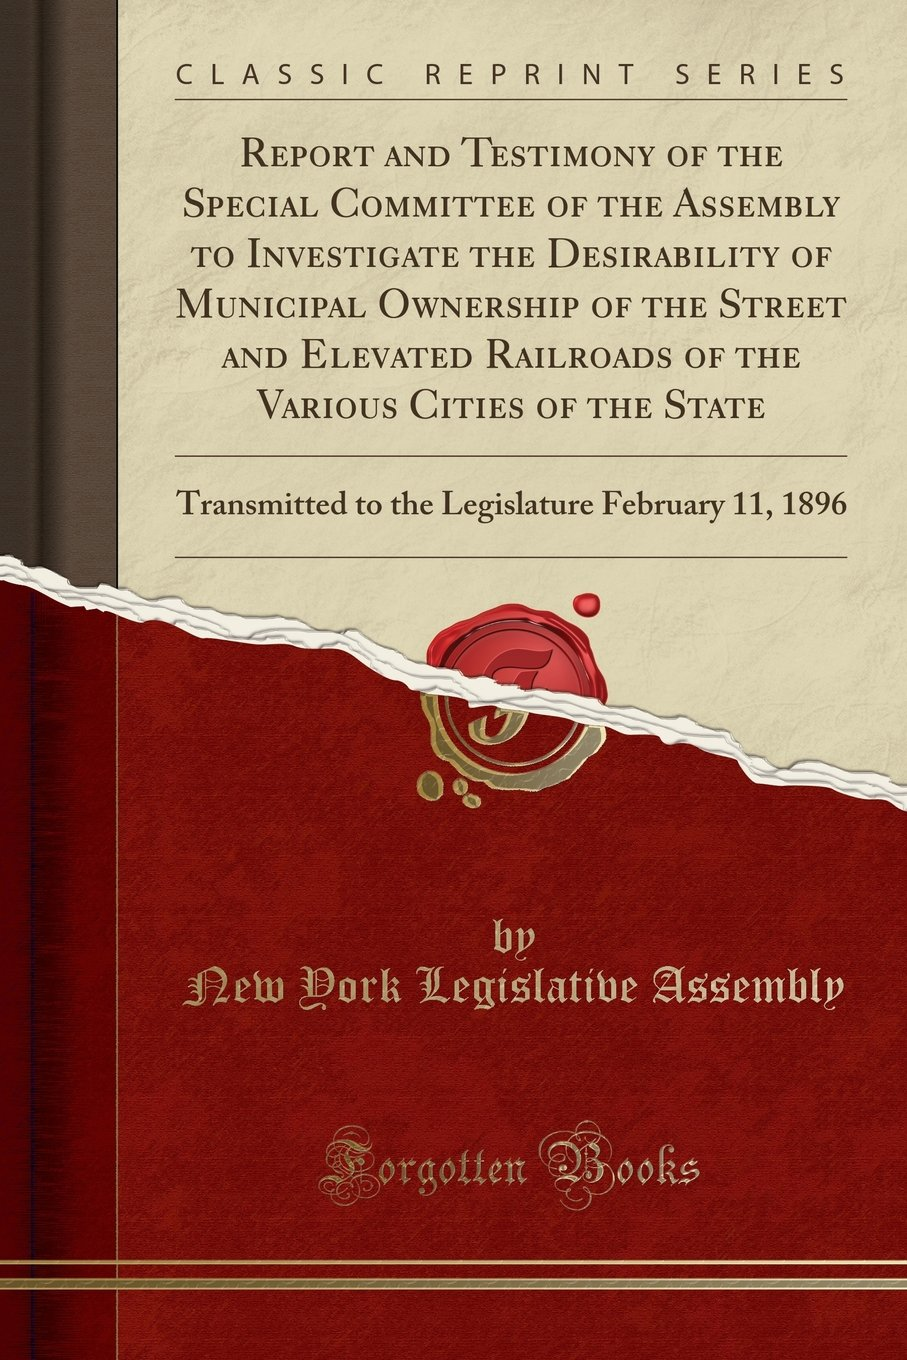 Download Report and Testimony of the Special Committee of the Assembly to Investigate the Desirability of Municipal Ownership of the Street and Elevated ... to the Legislature February 11, 1896 ebook